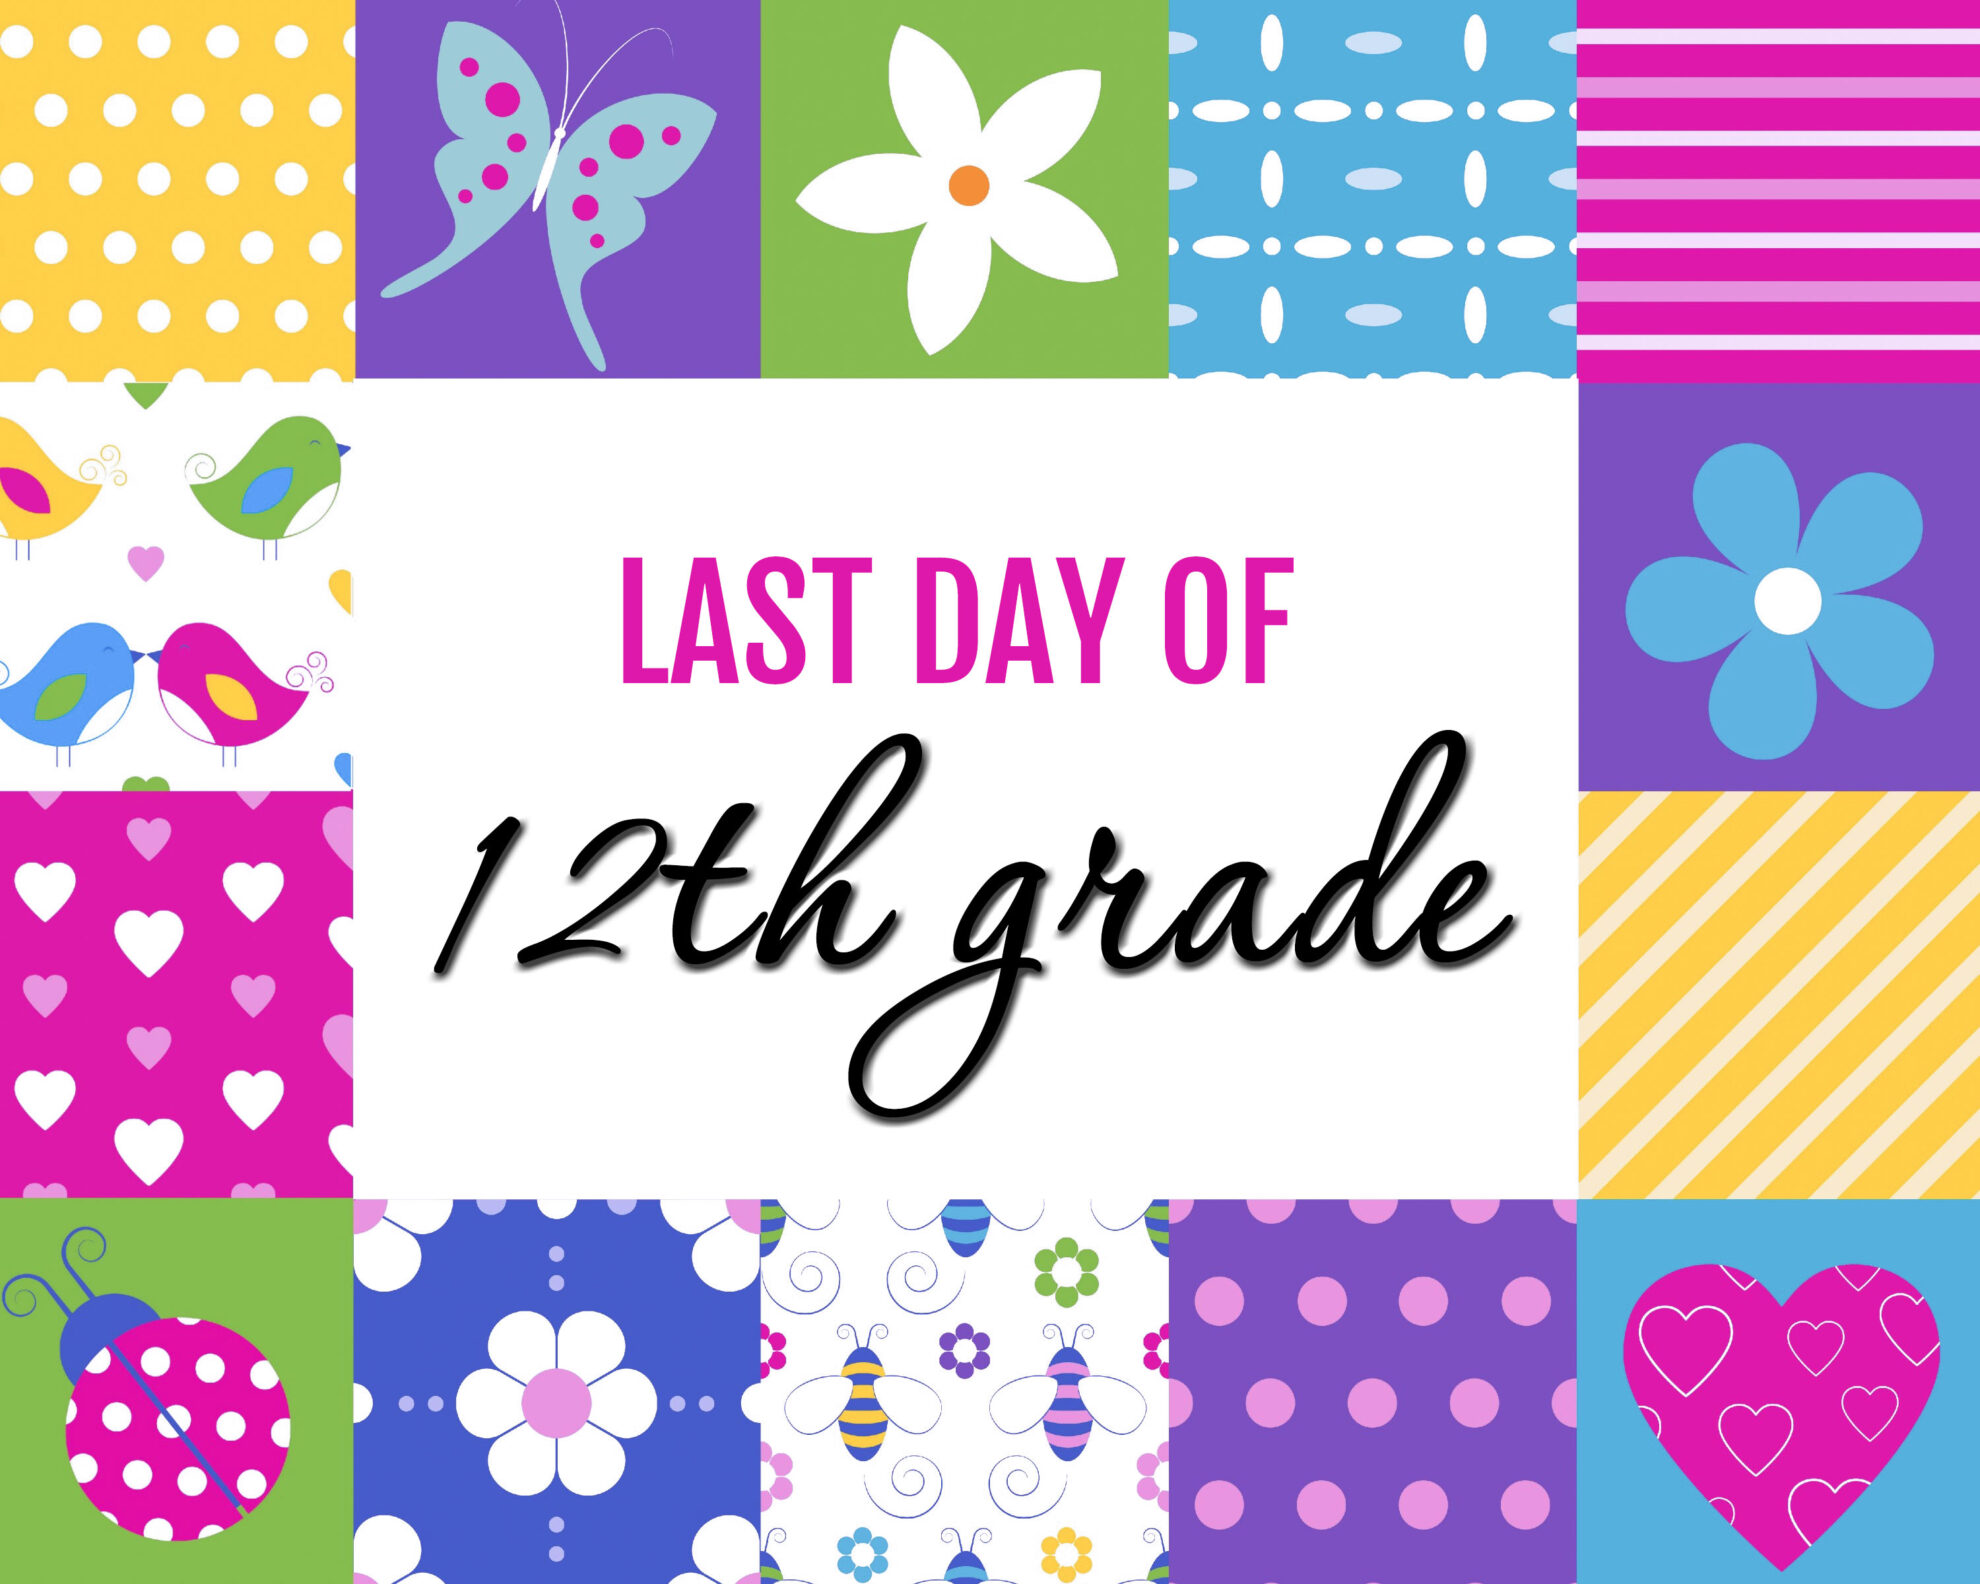 Colorful Girl Last Day of 12th grade Free Printable